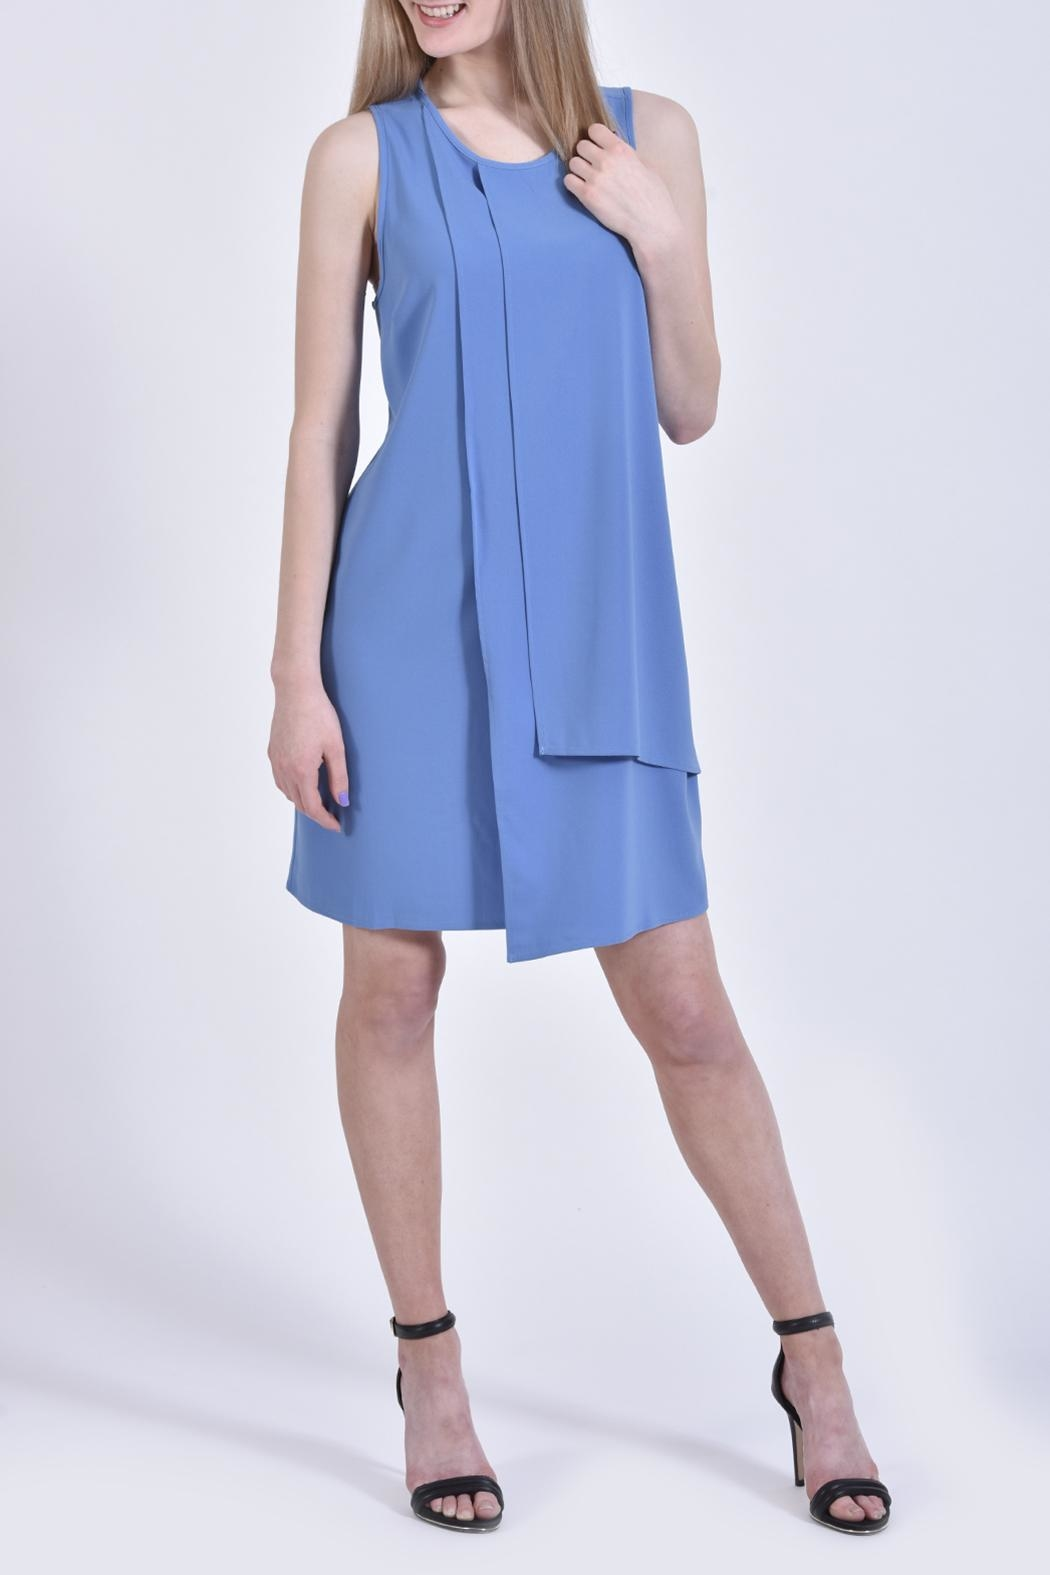 Mud Pie Blue Dress - Main Image